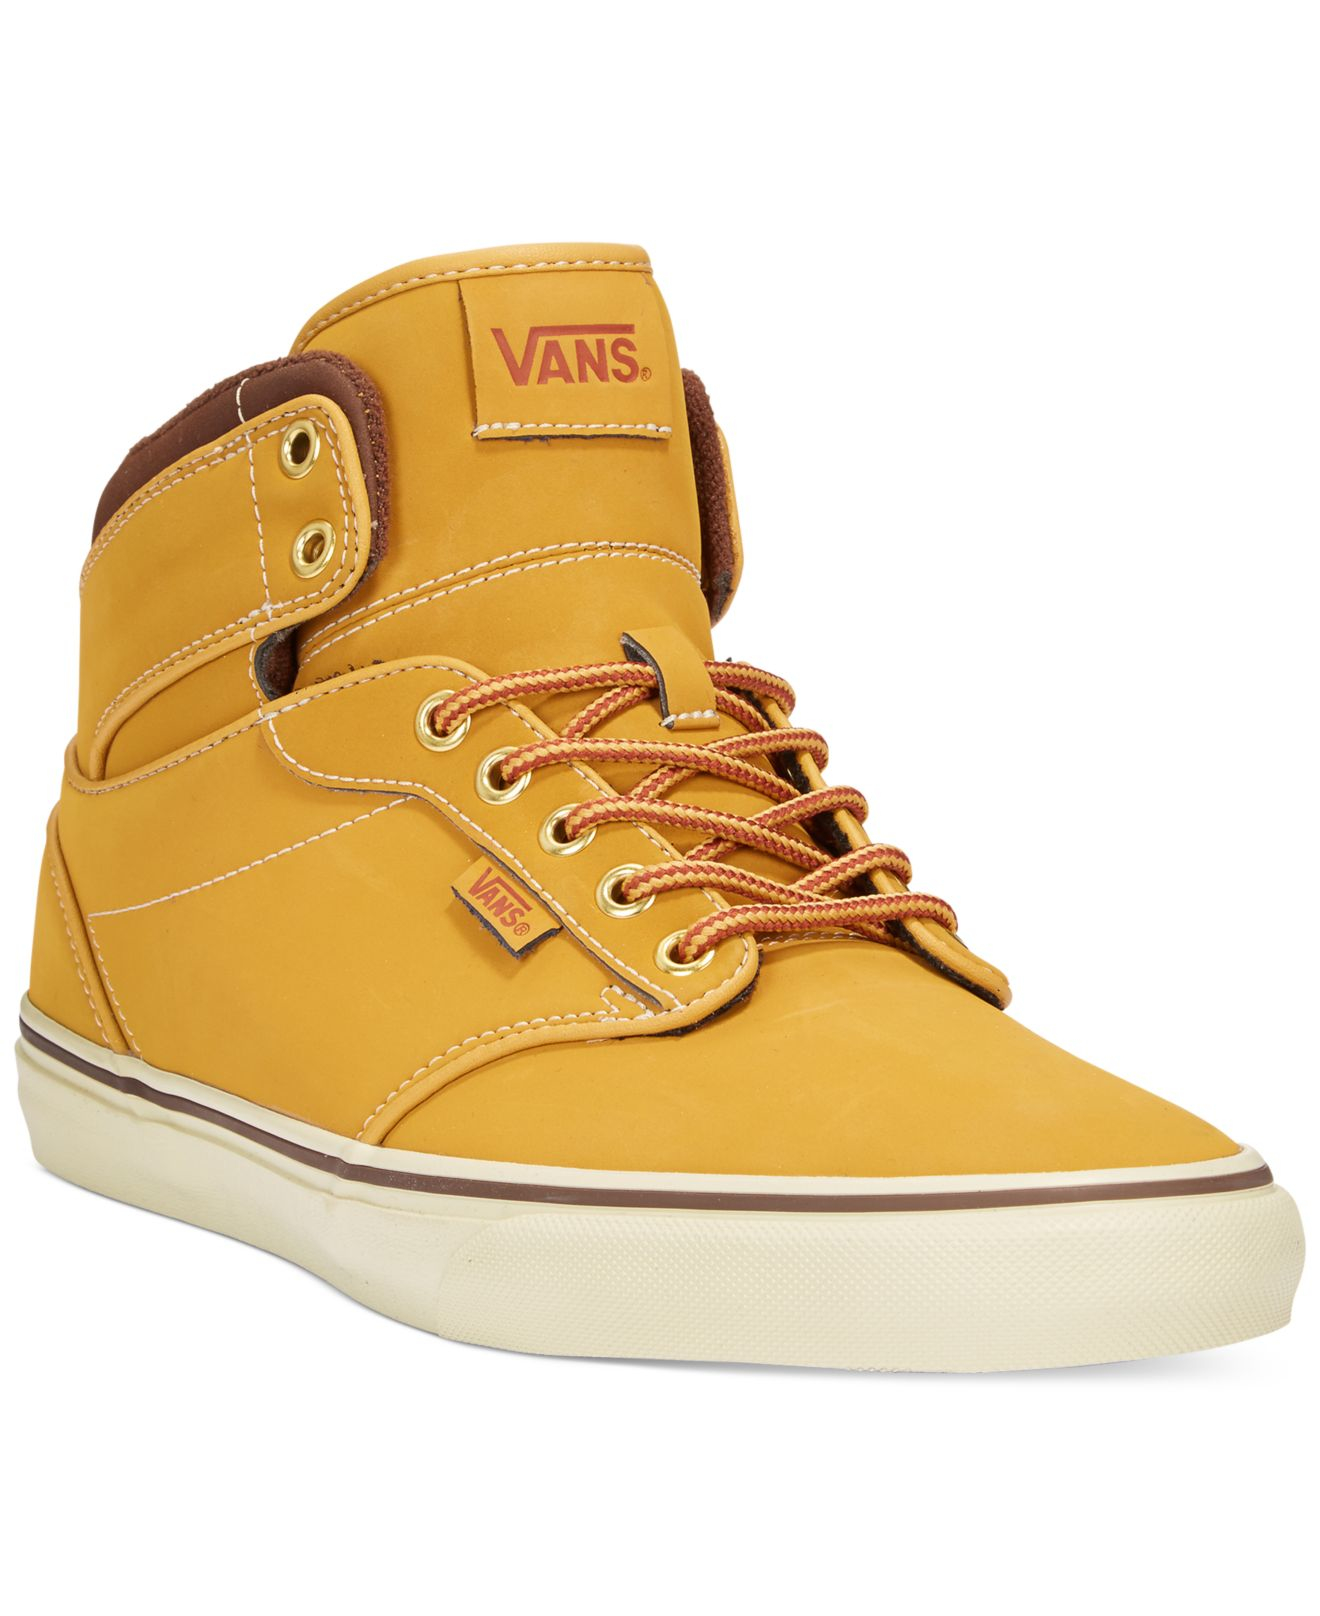 3f8d121acaa1 Lyst - Vans Men s Atwood Hi Sneakers in Orange for Men